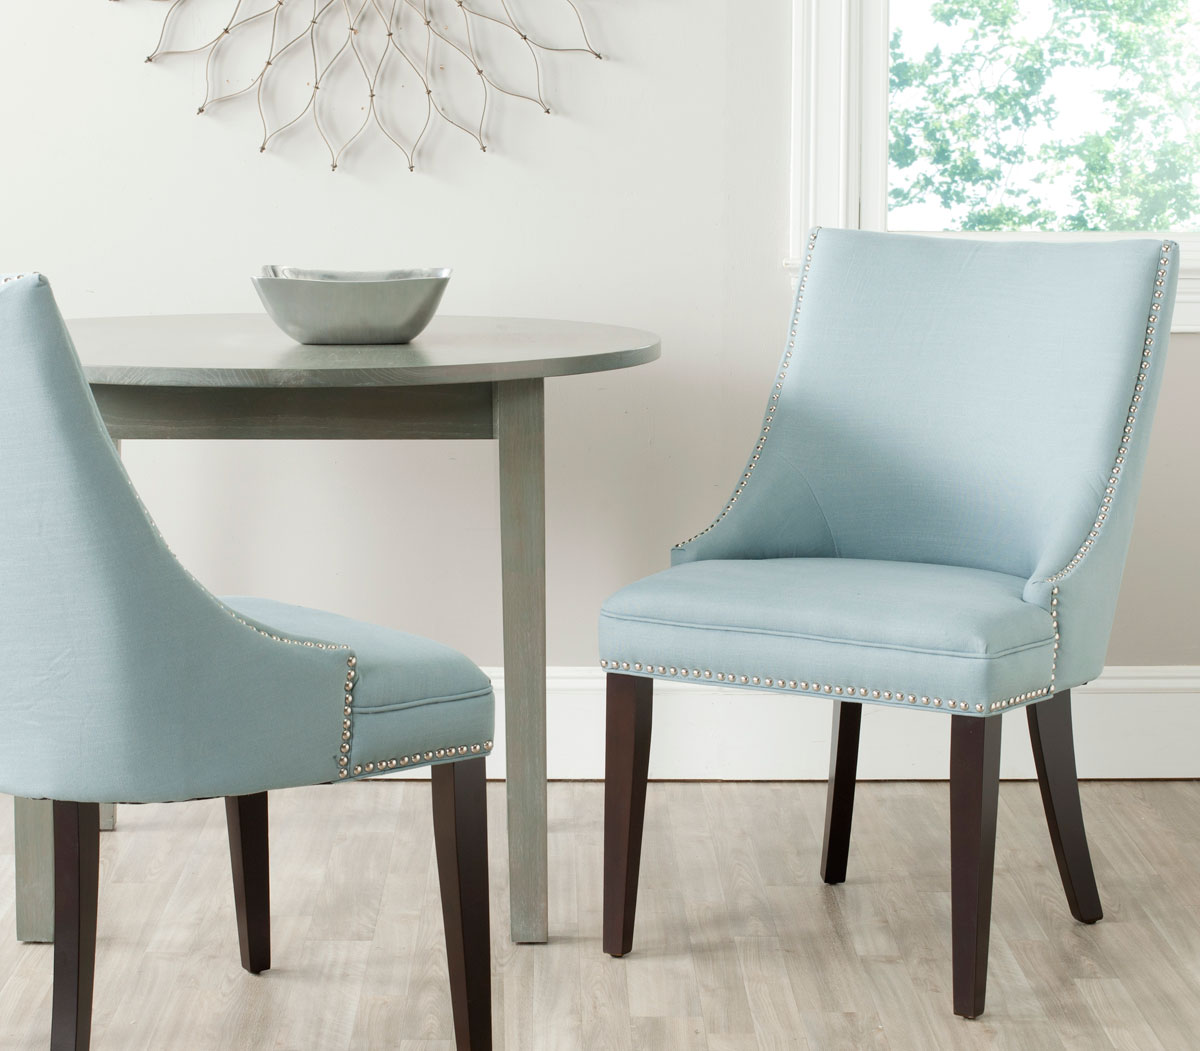 target blue chair used banquet chairs for sale mcr4715a set2 dining furniture by safavieh